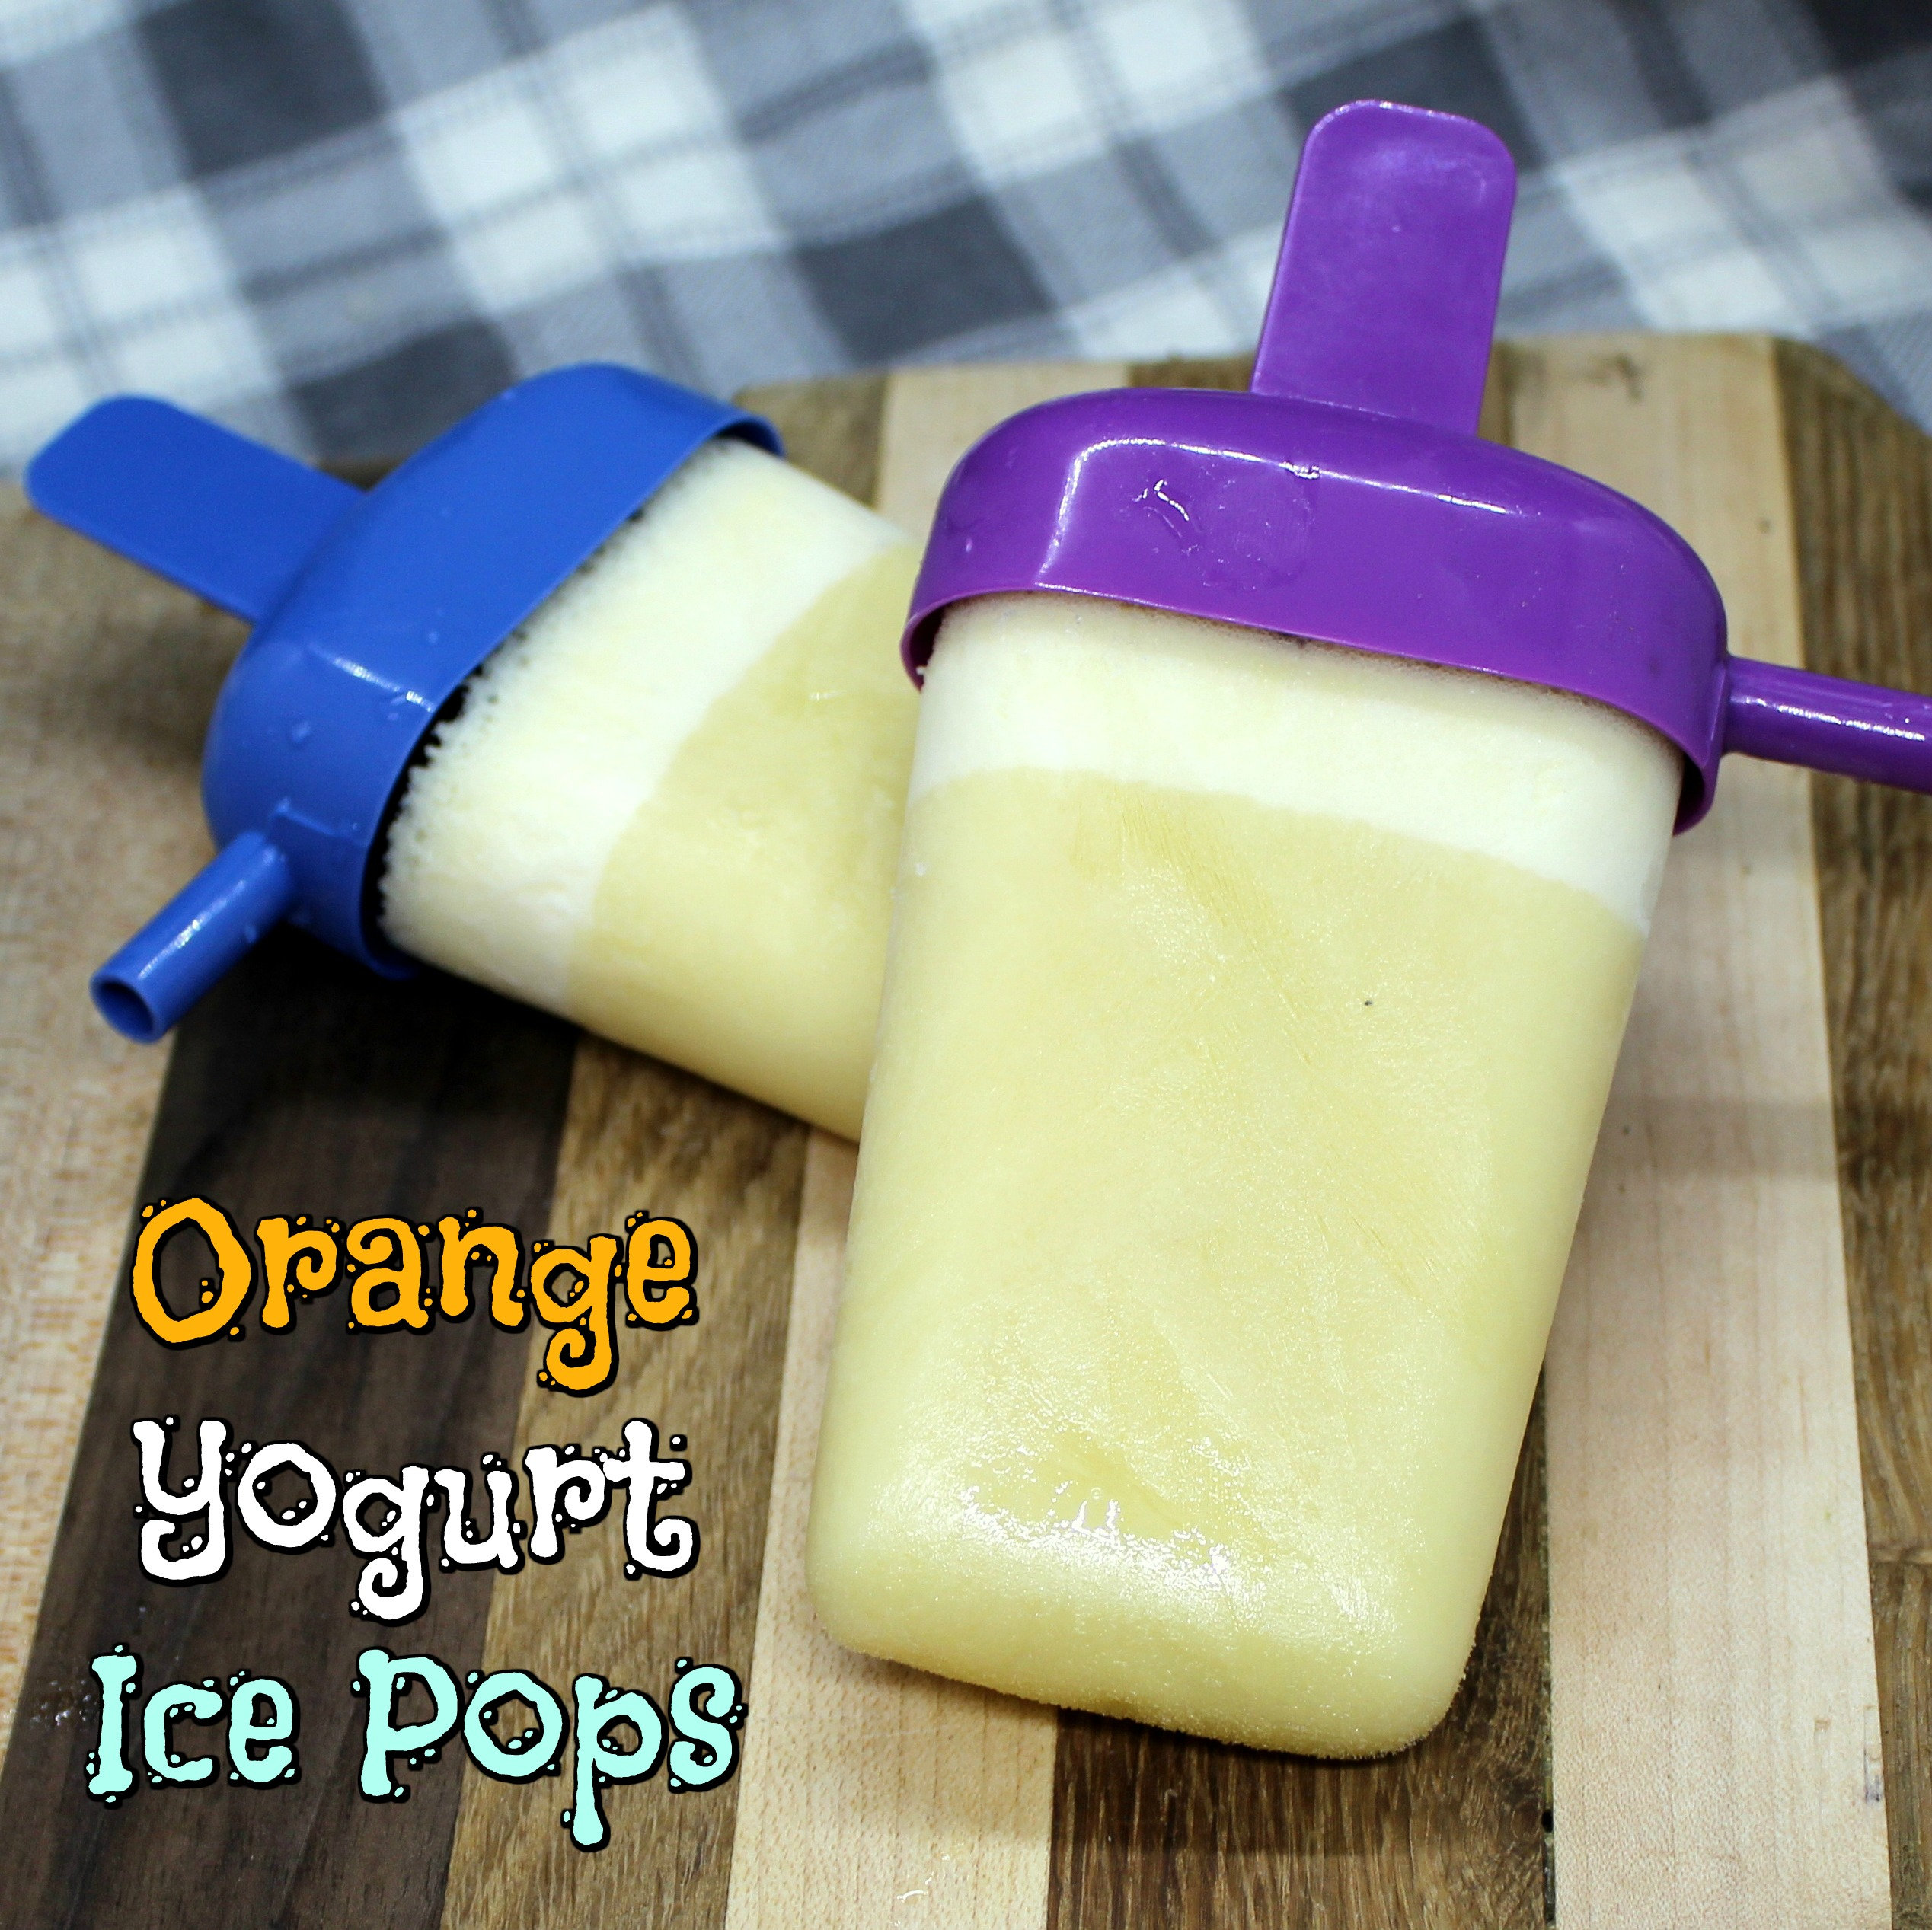 Orange Yogurt Ice Pops